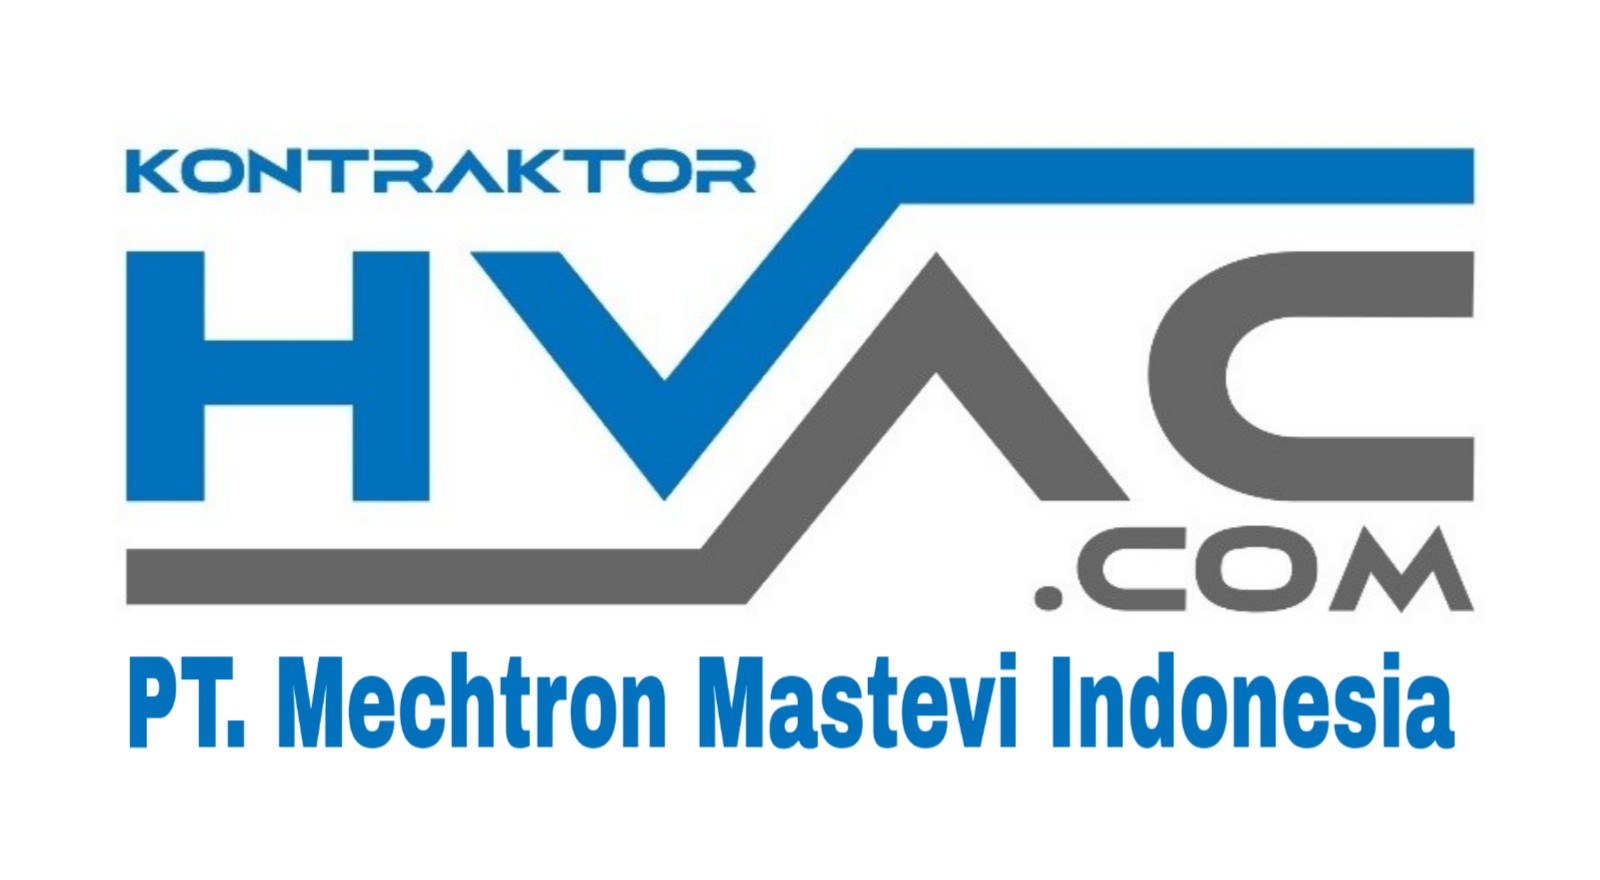 PT Mechtron Mastevi Indonesia